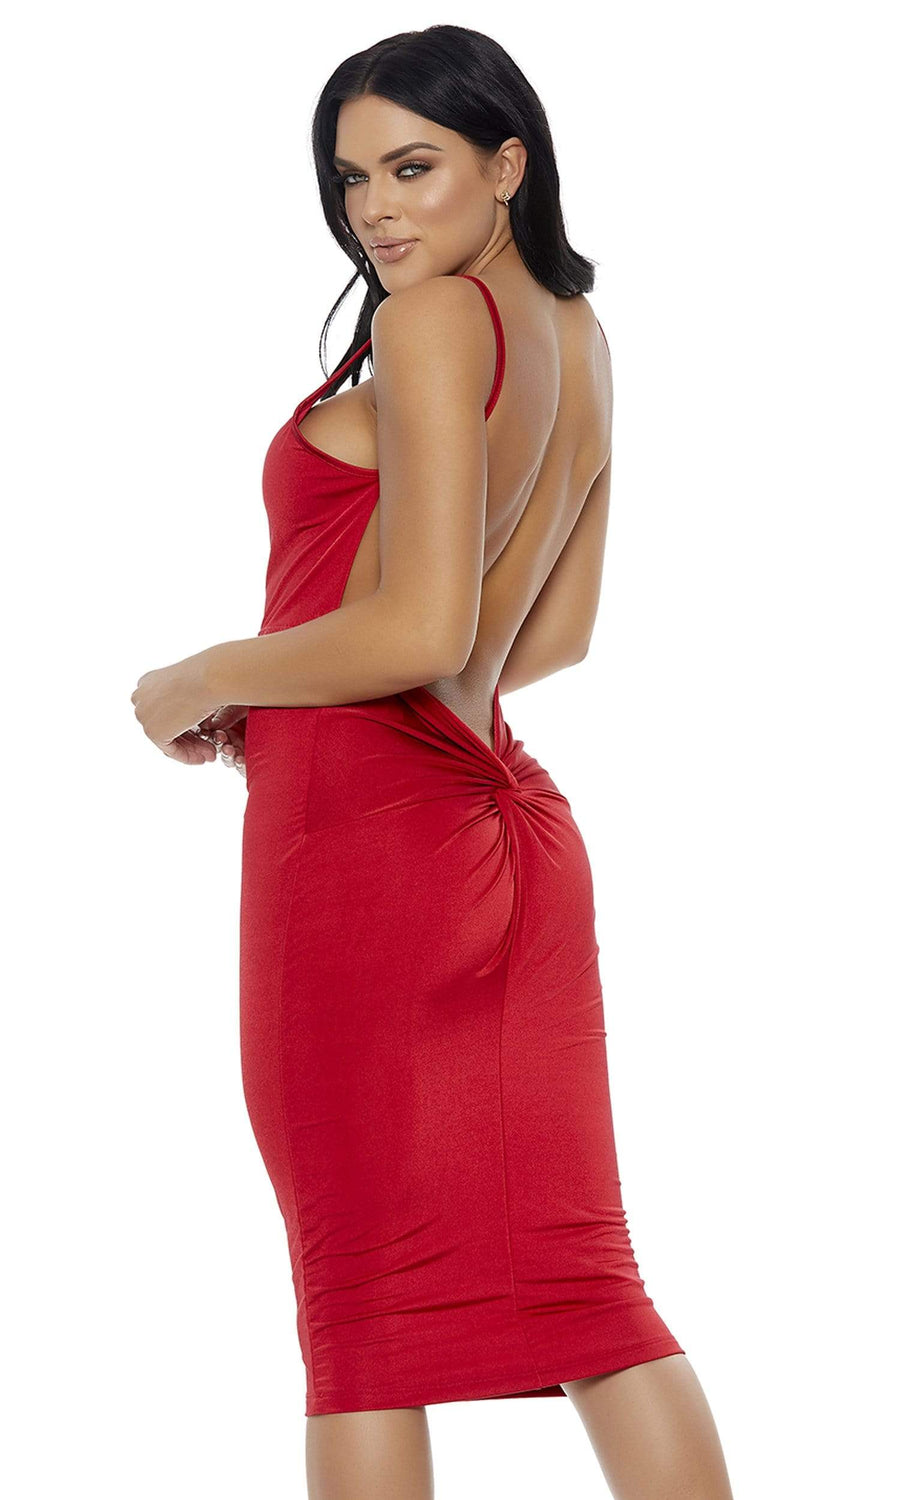 Forplay Large / Red Red Knot Into It Midi Dress SHC-886800-L-FP Apparel & Accessories > Clothing > Dresses